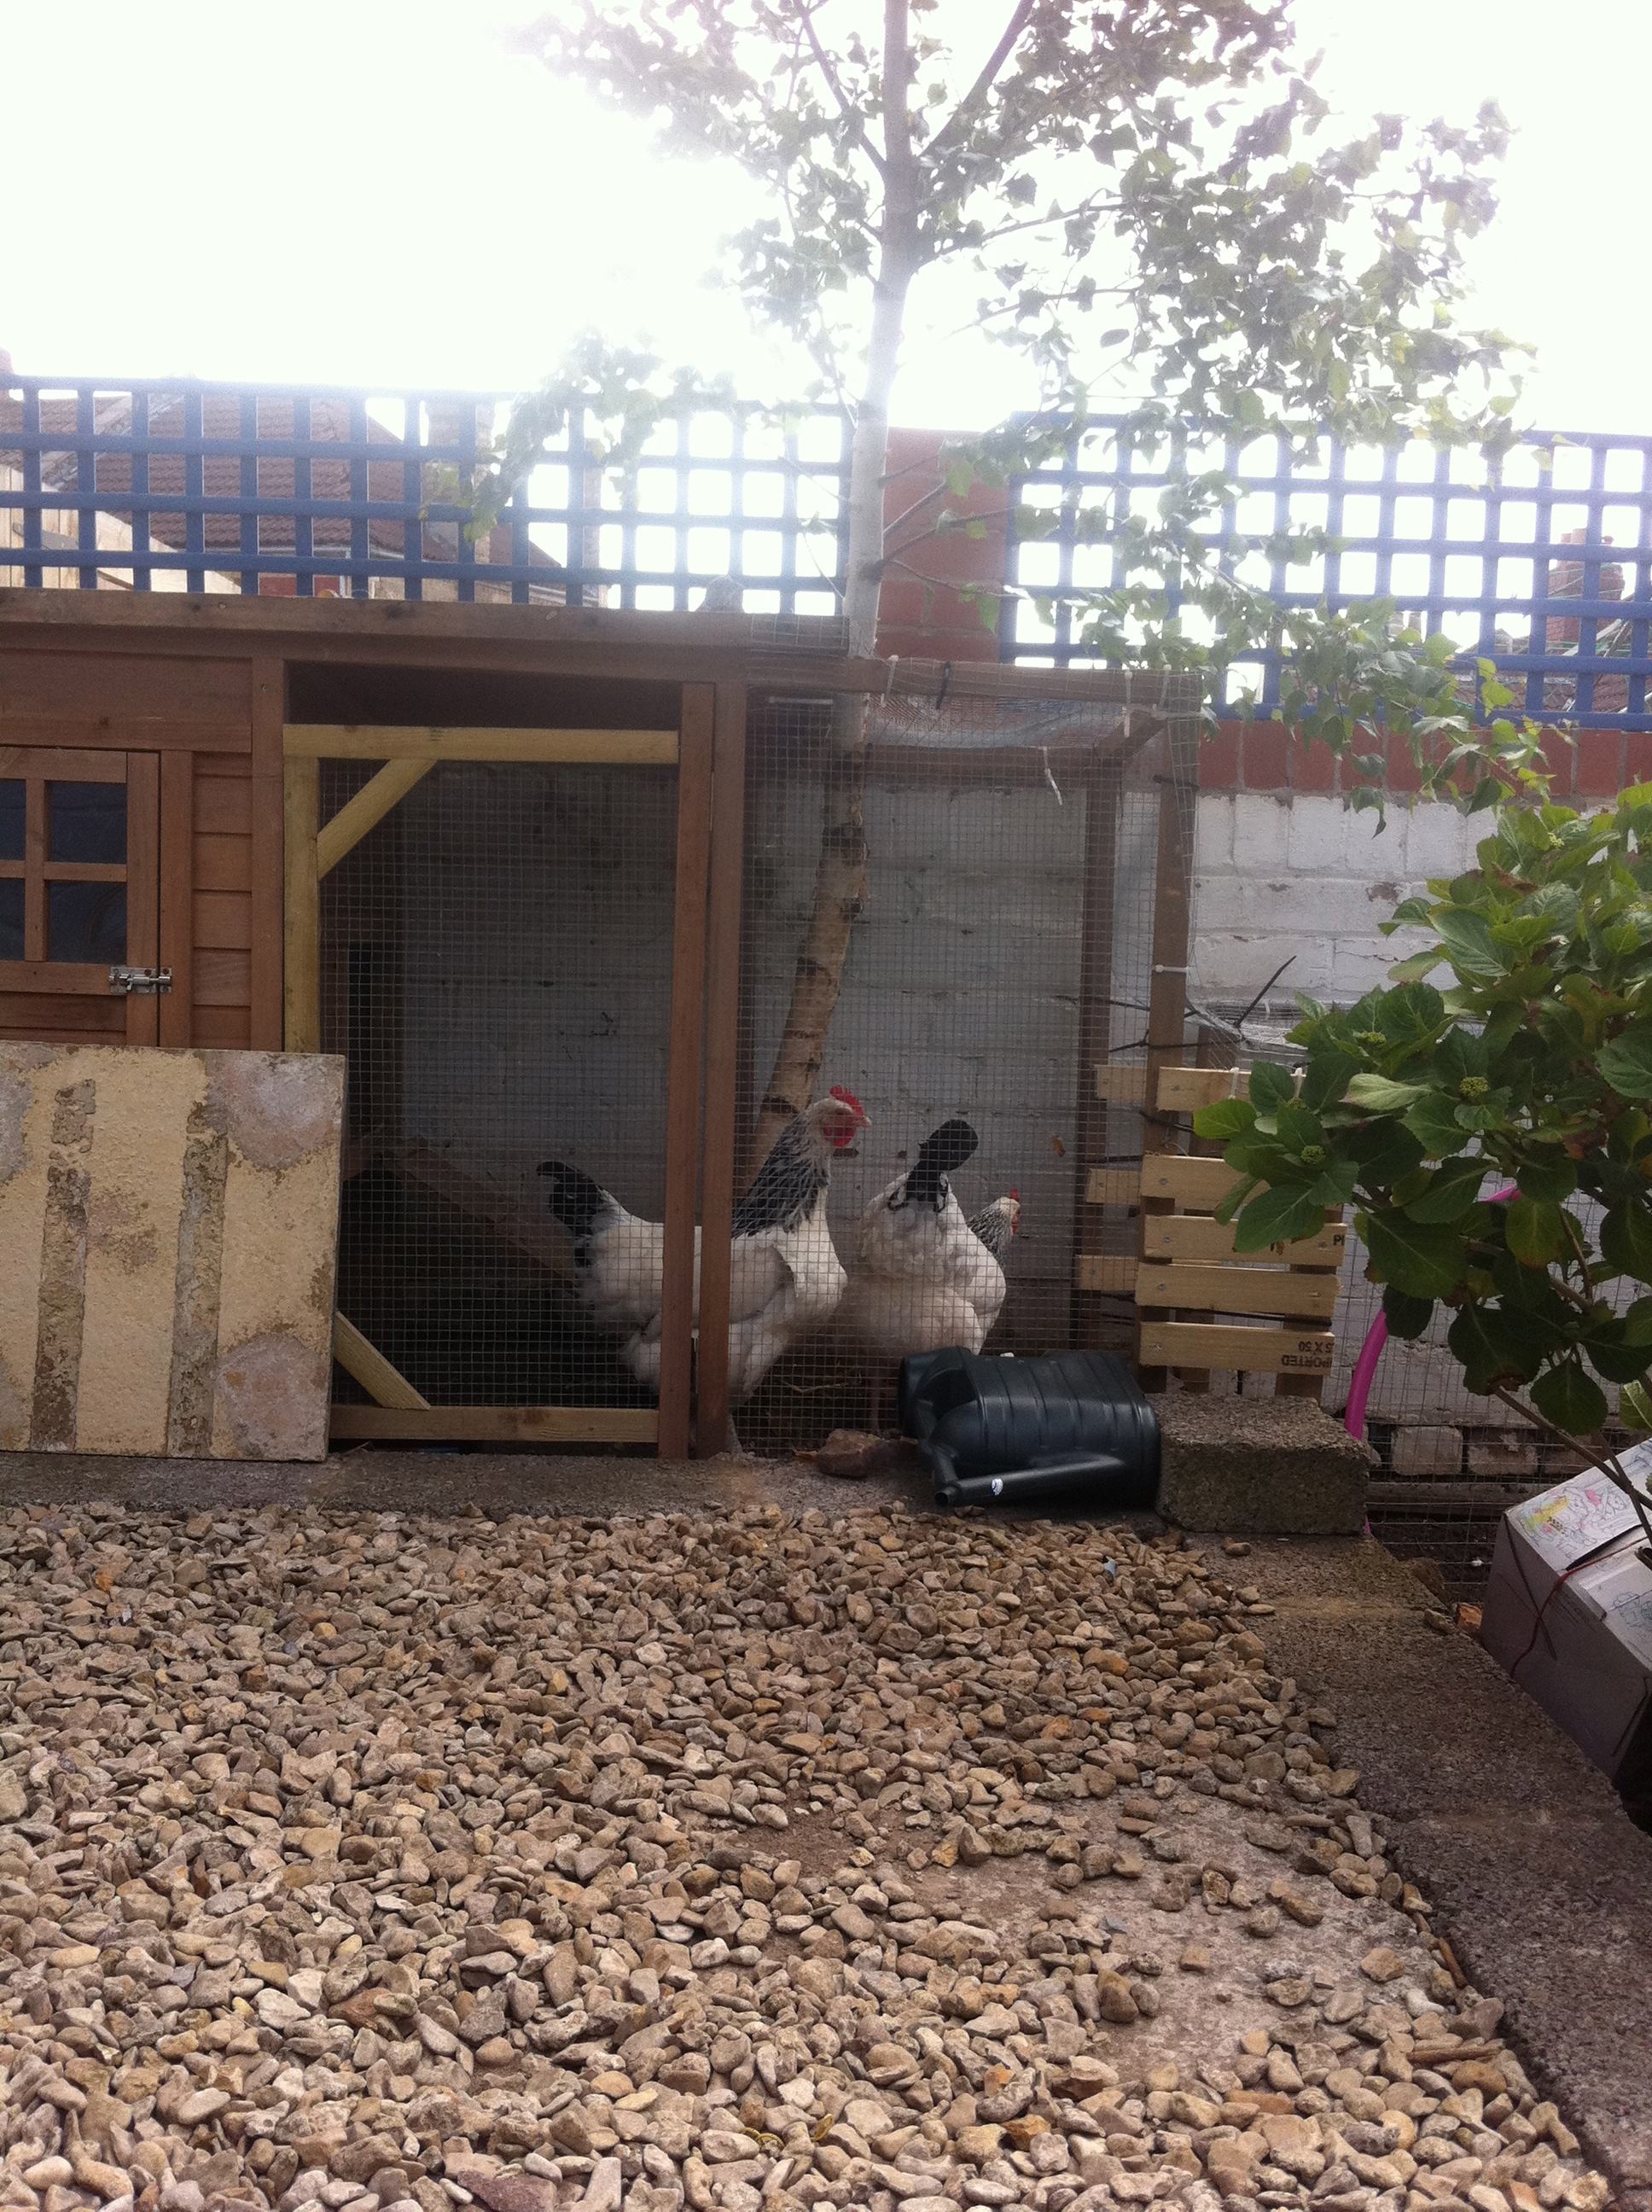 Cluck cluck go the sound of the hens